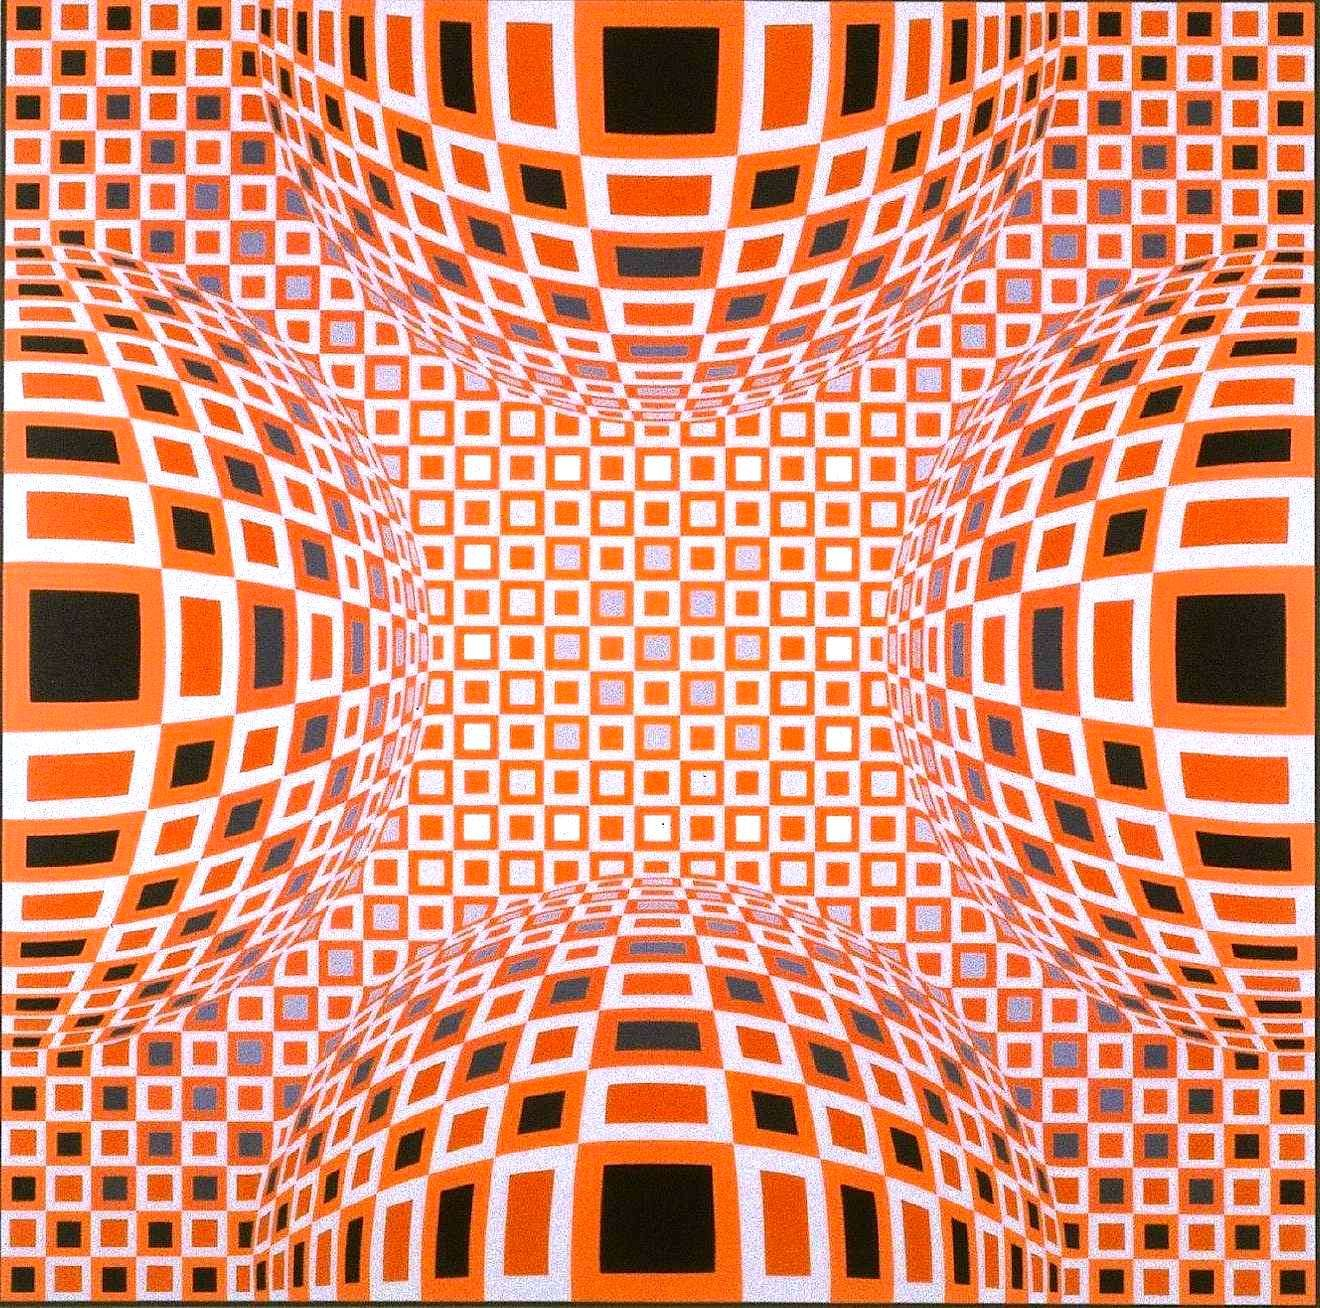 O R A N G E. Victor Vasarely painting